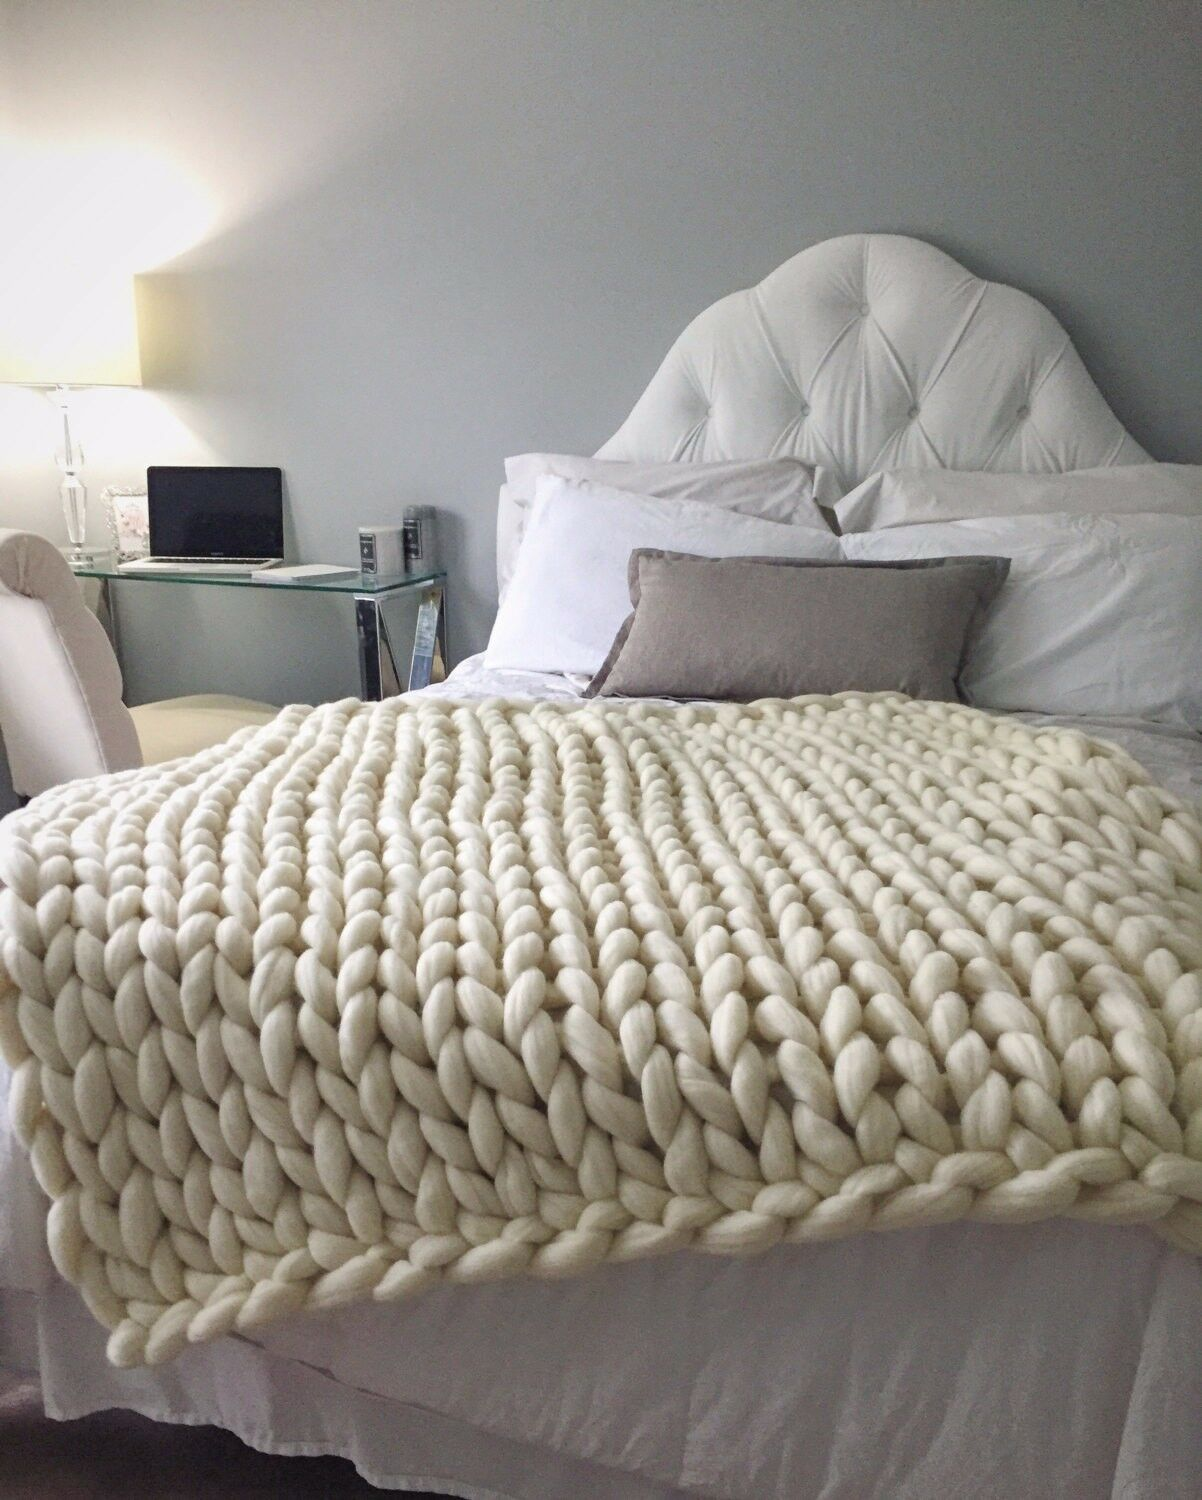 40 x 64in, US Top Quality Merino Wool Chunky Knit Blanket, Hand Made Soft Throw